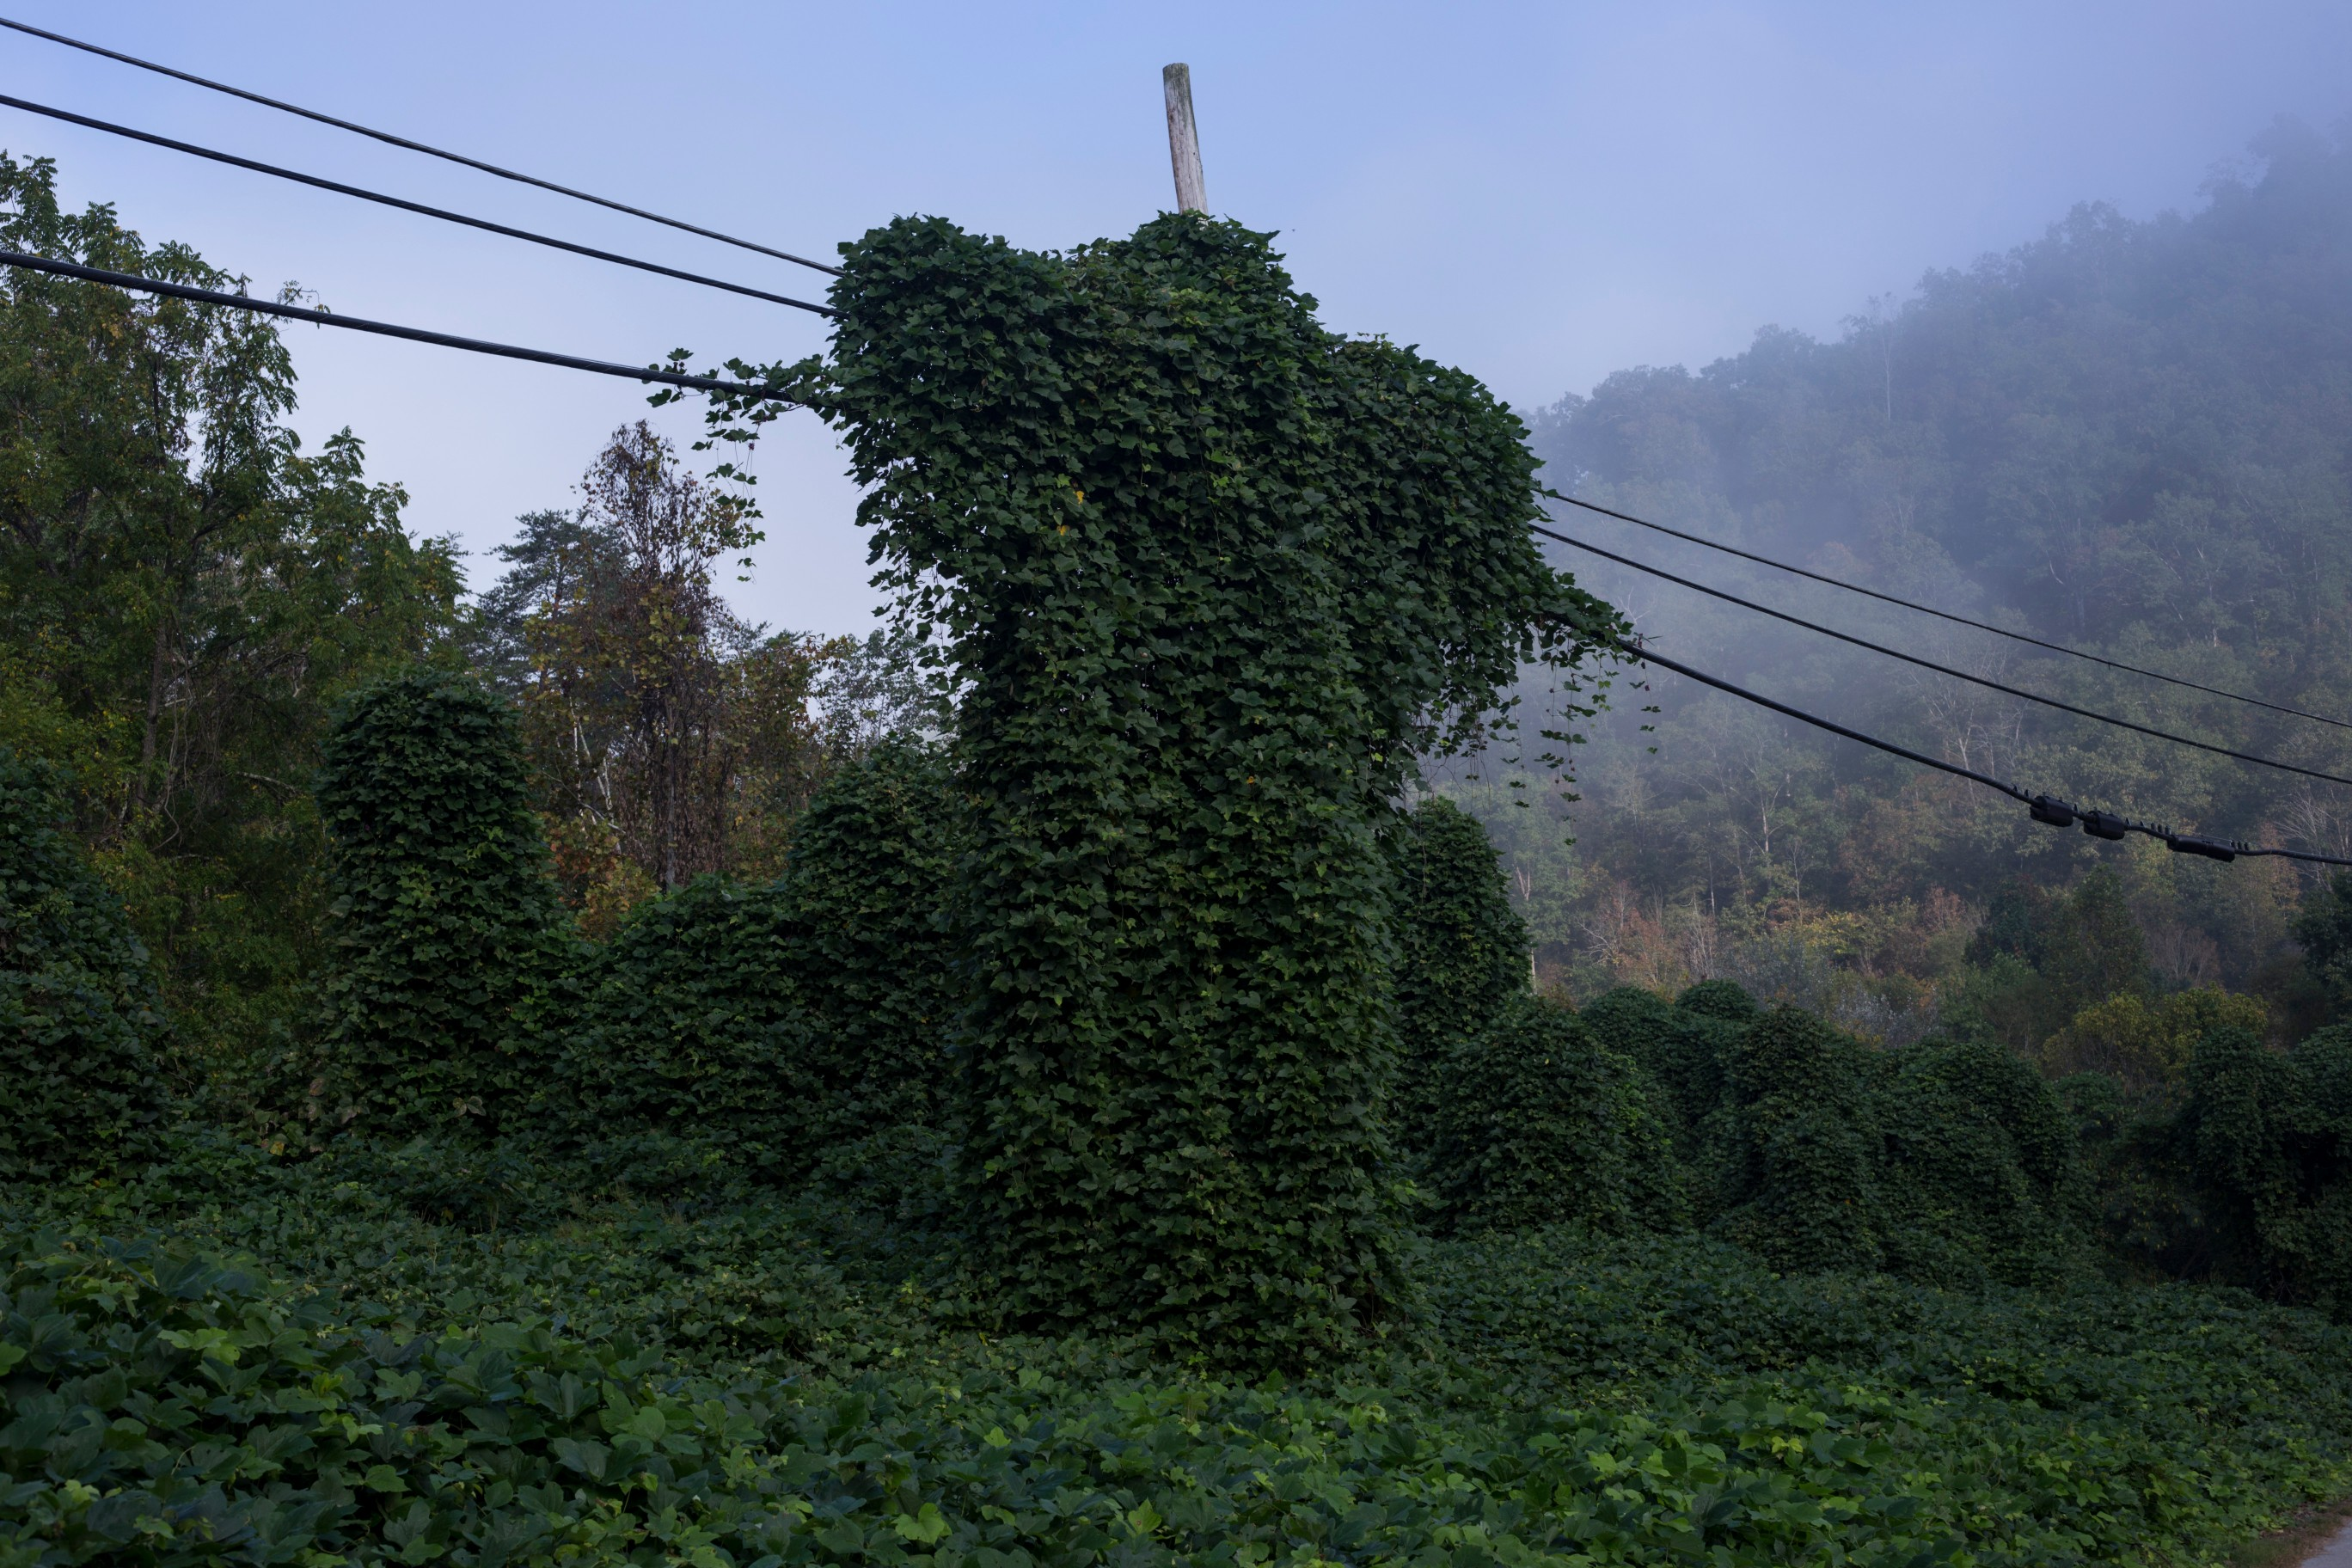 An electrical pole is over powered by kudzu in Hi Hat, Ky., on Friday, September 22, 2017. (Photo by Brittany Greeson/GroundTruth)